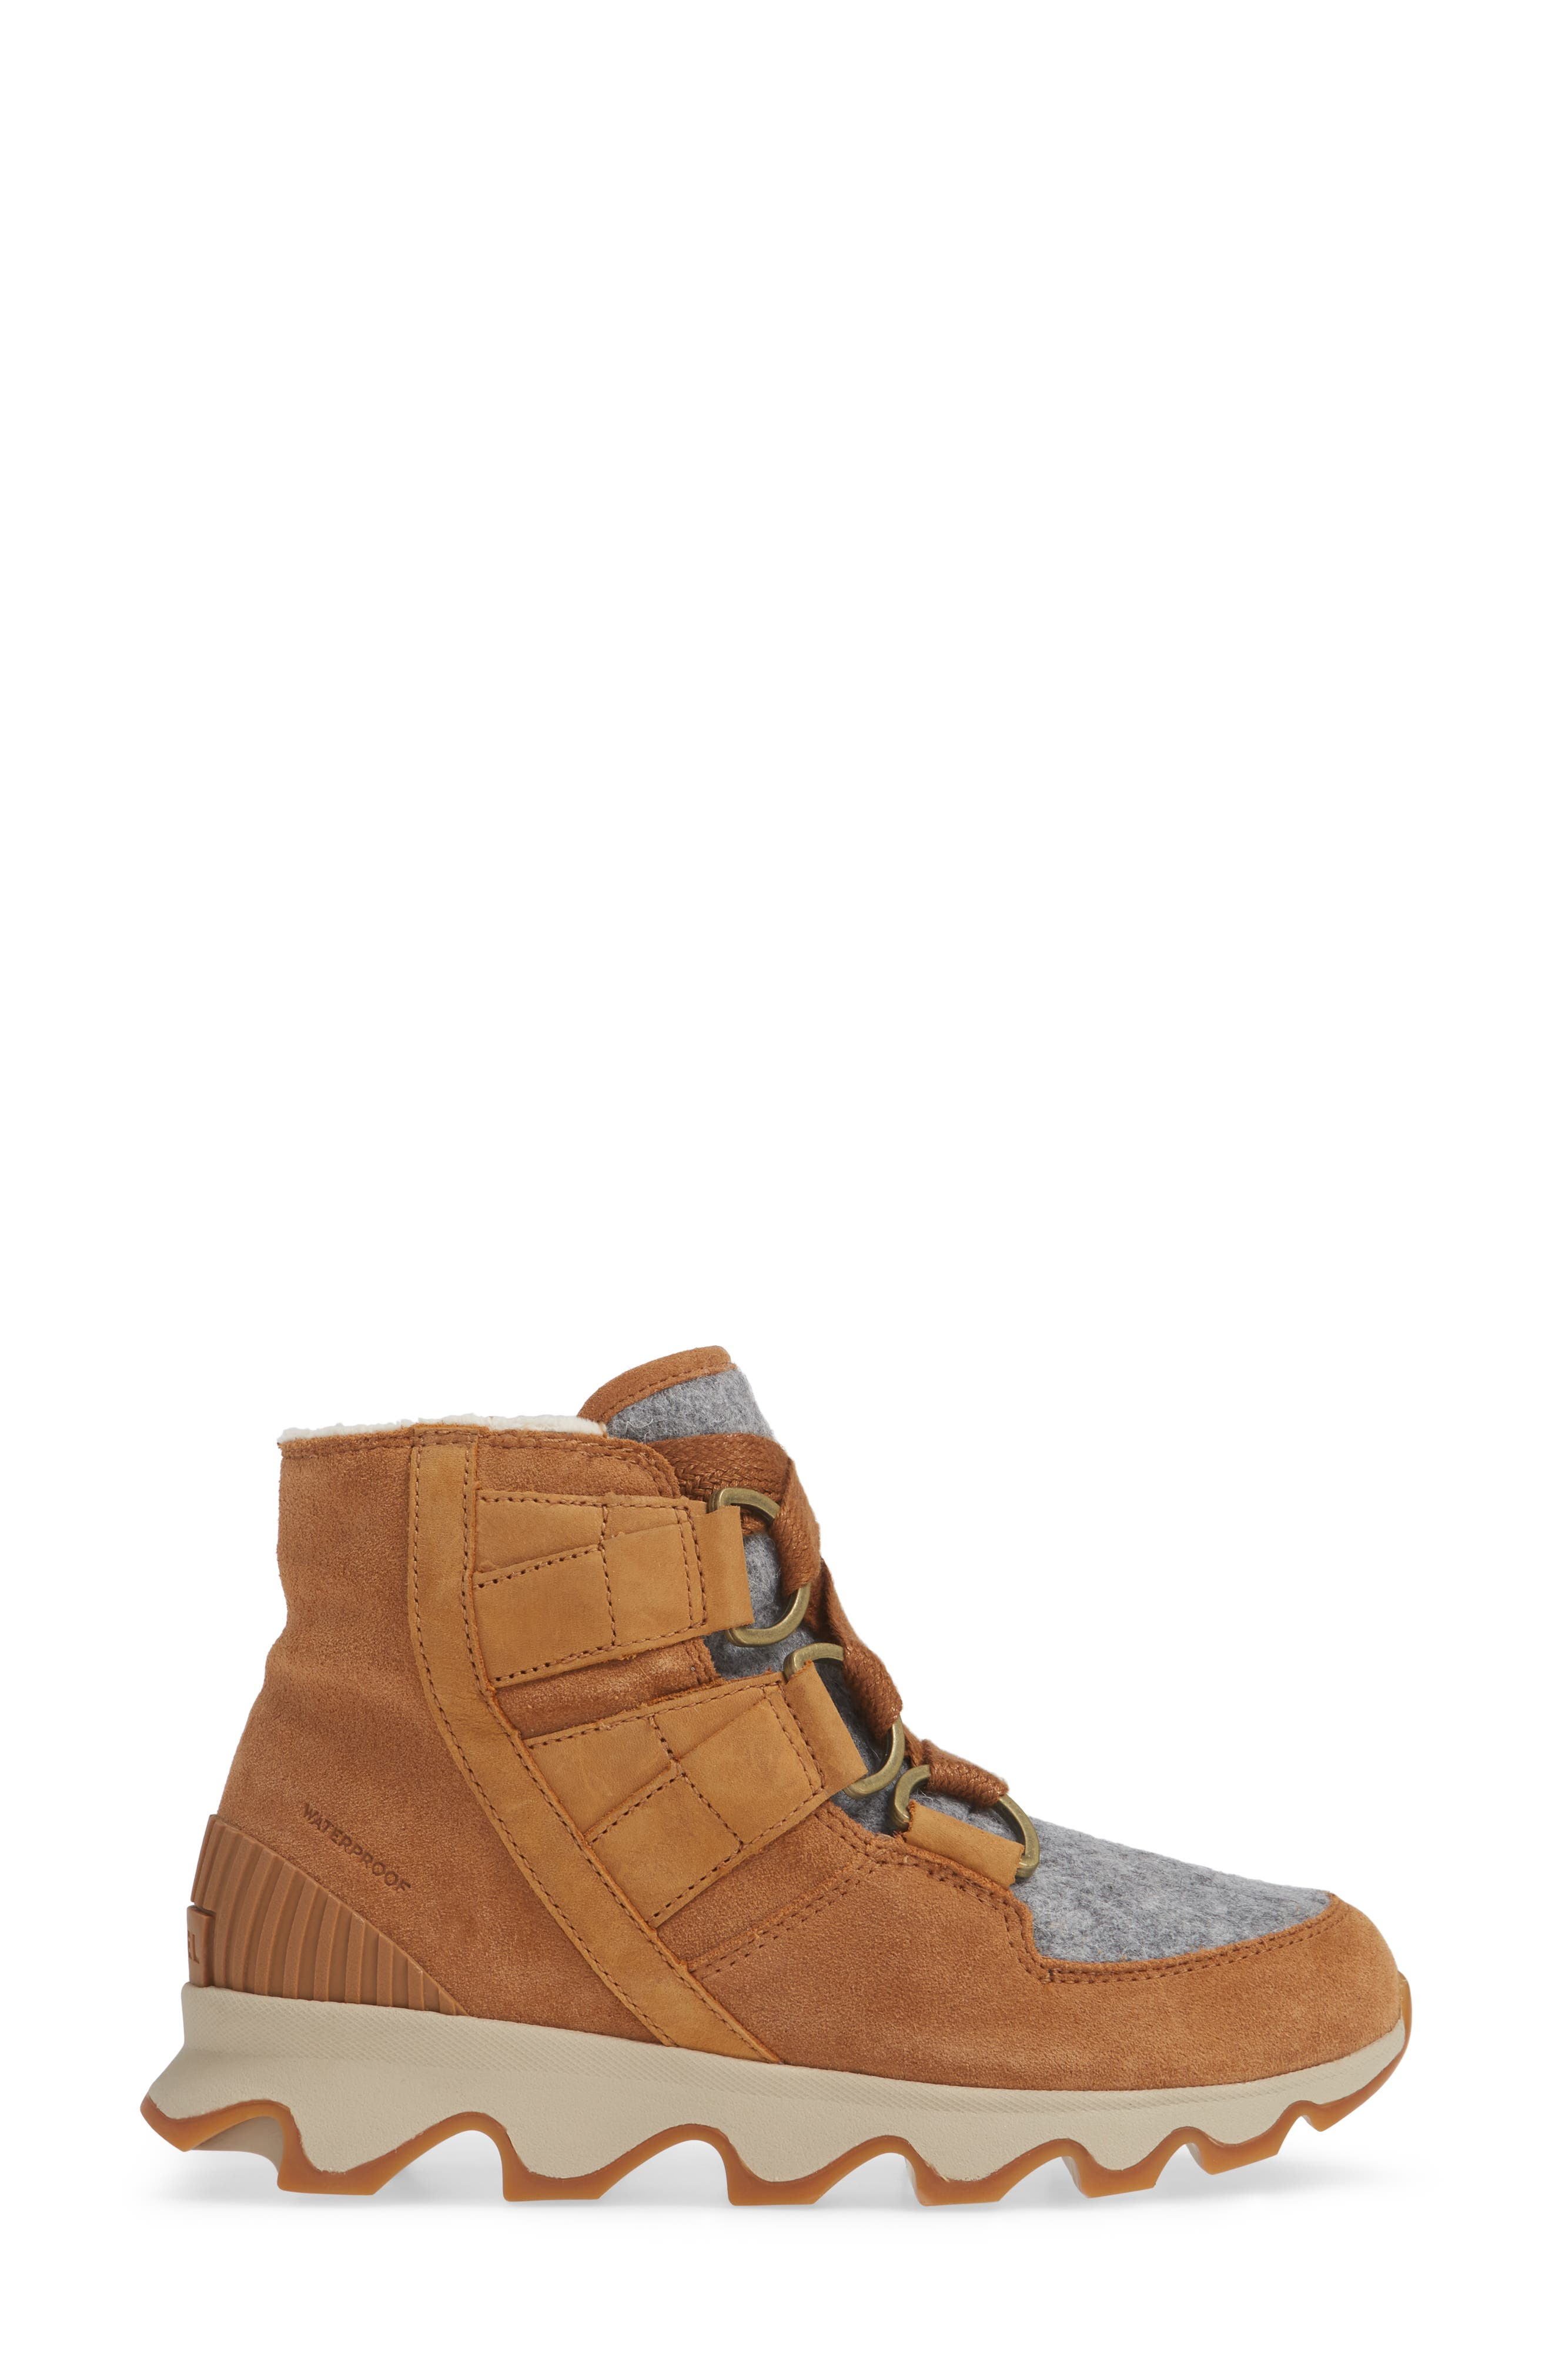 Kinetic Waterproof Short Lace-Up Boot,                             Alternate thumbnail 3, color,                             CAMEL BROWN